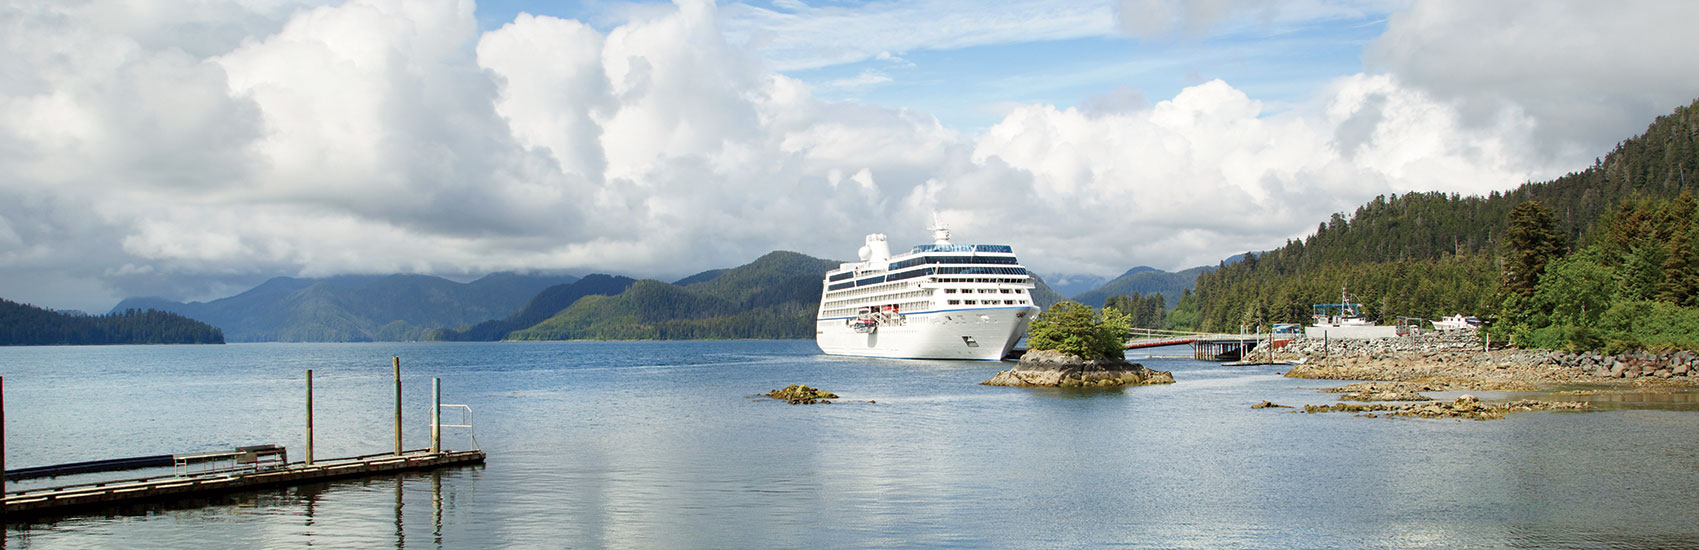 Ultimate Alaska with Oceania Cruises